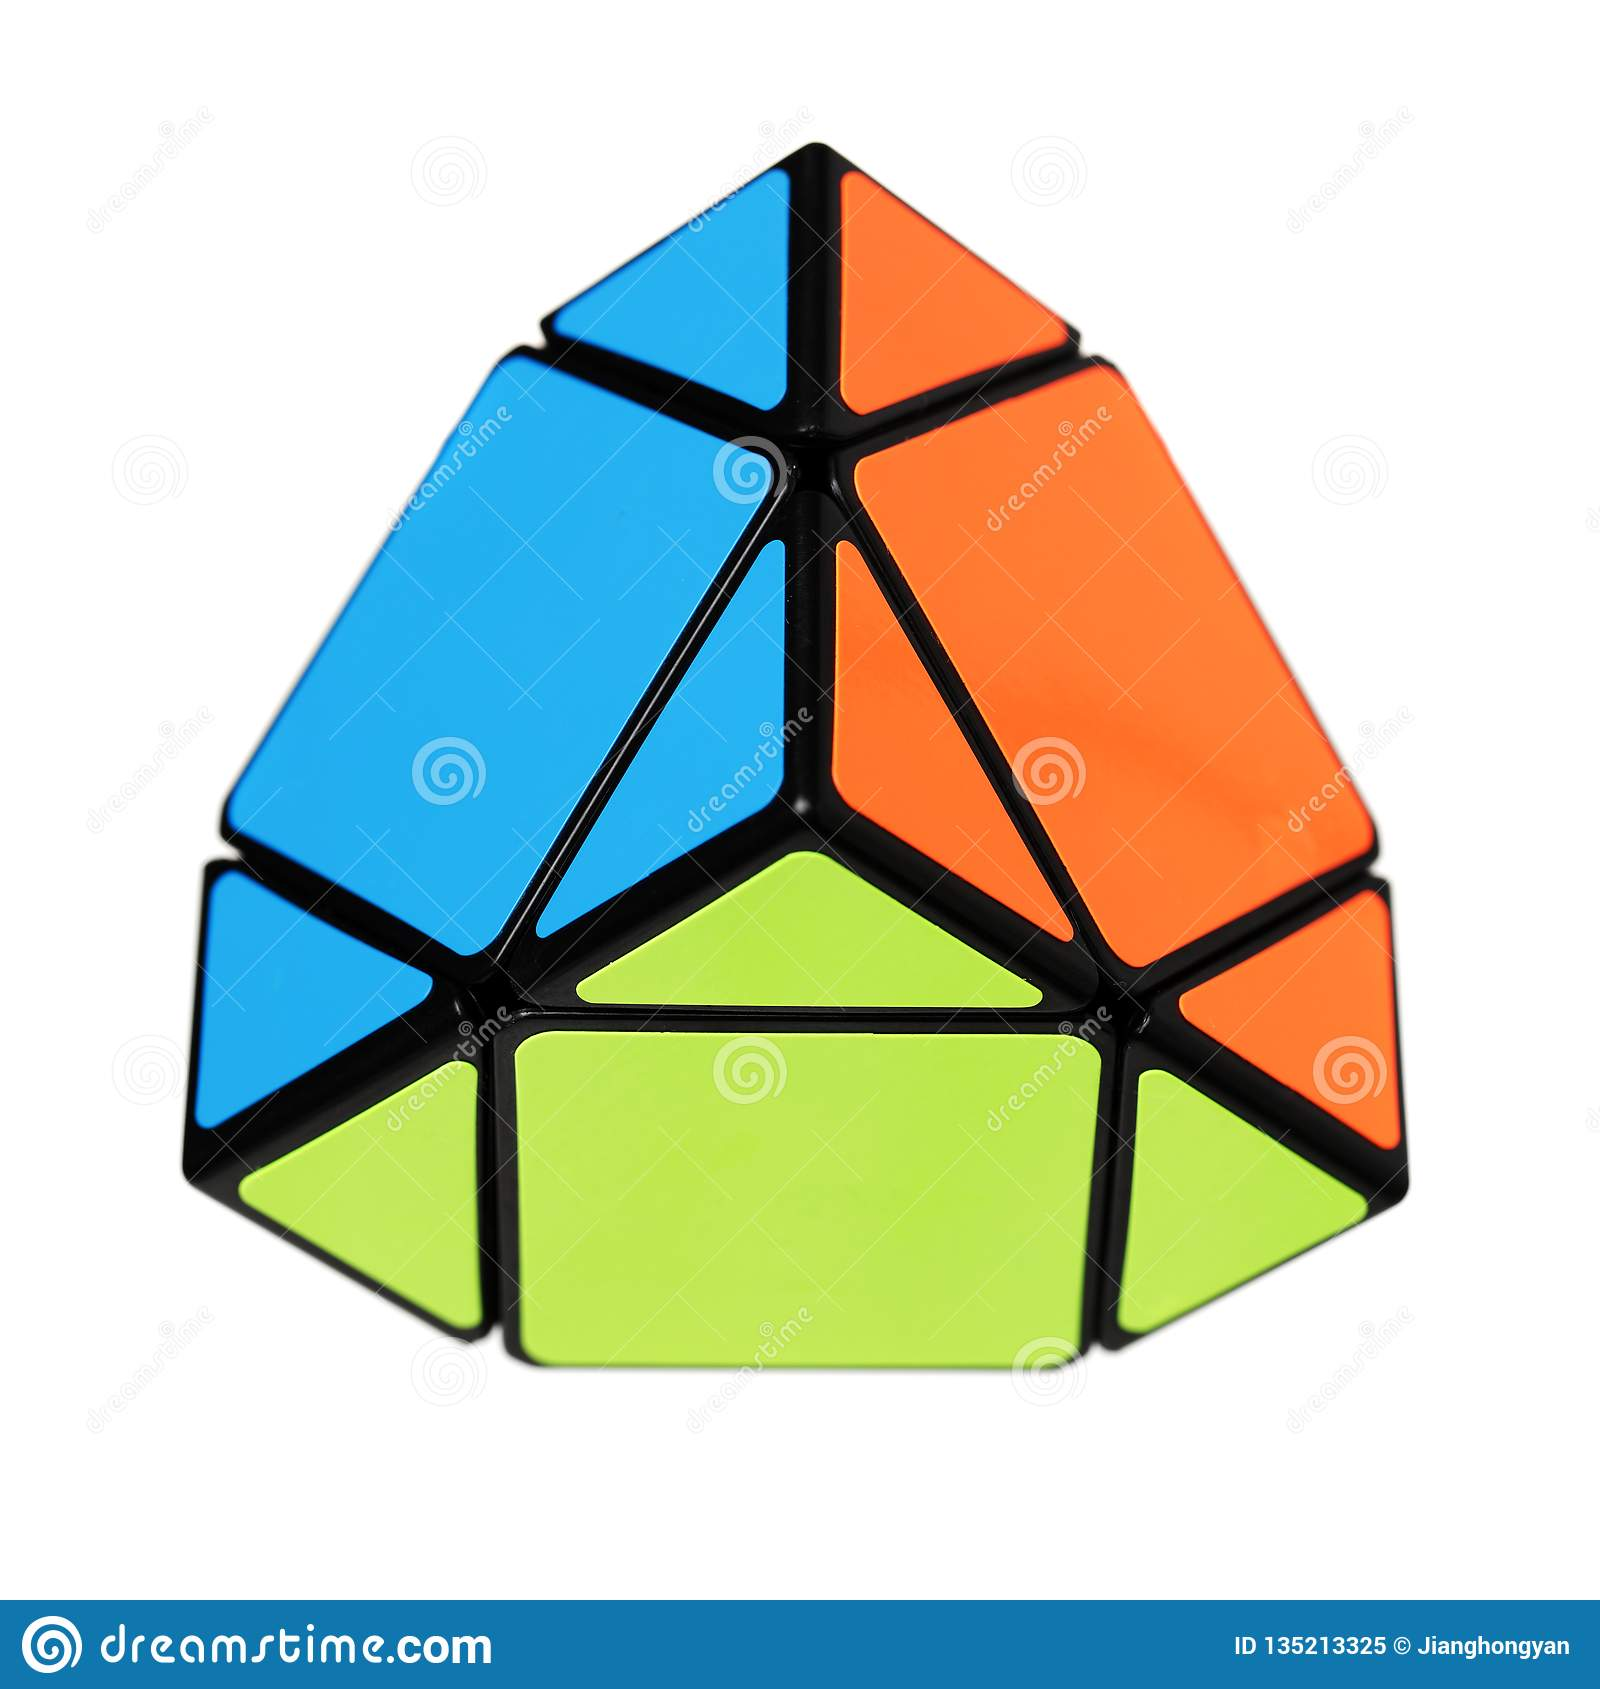 Rubik`s Pyramid Looking Cube Called Pyraminx Used For